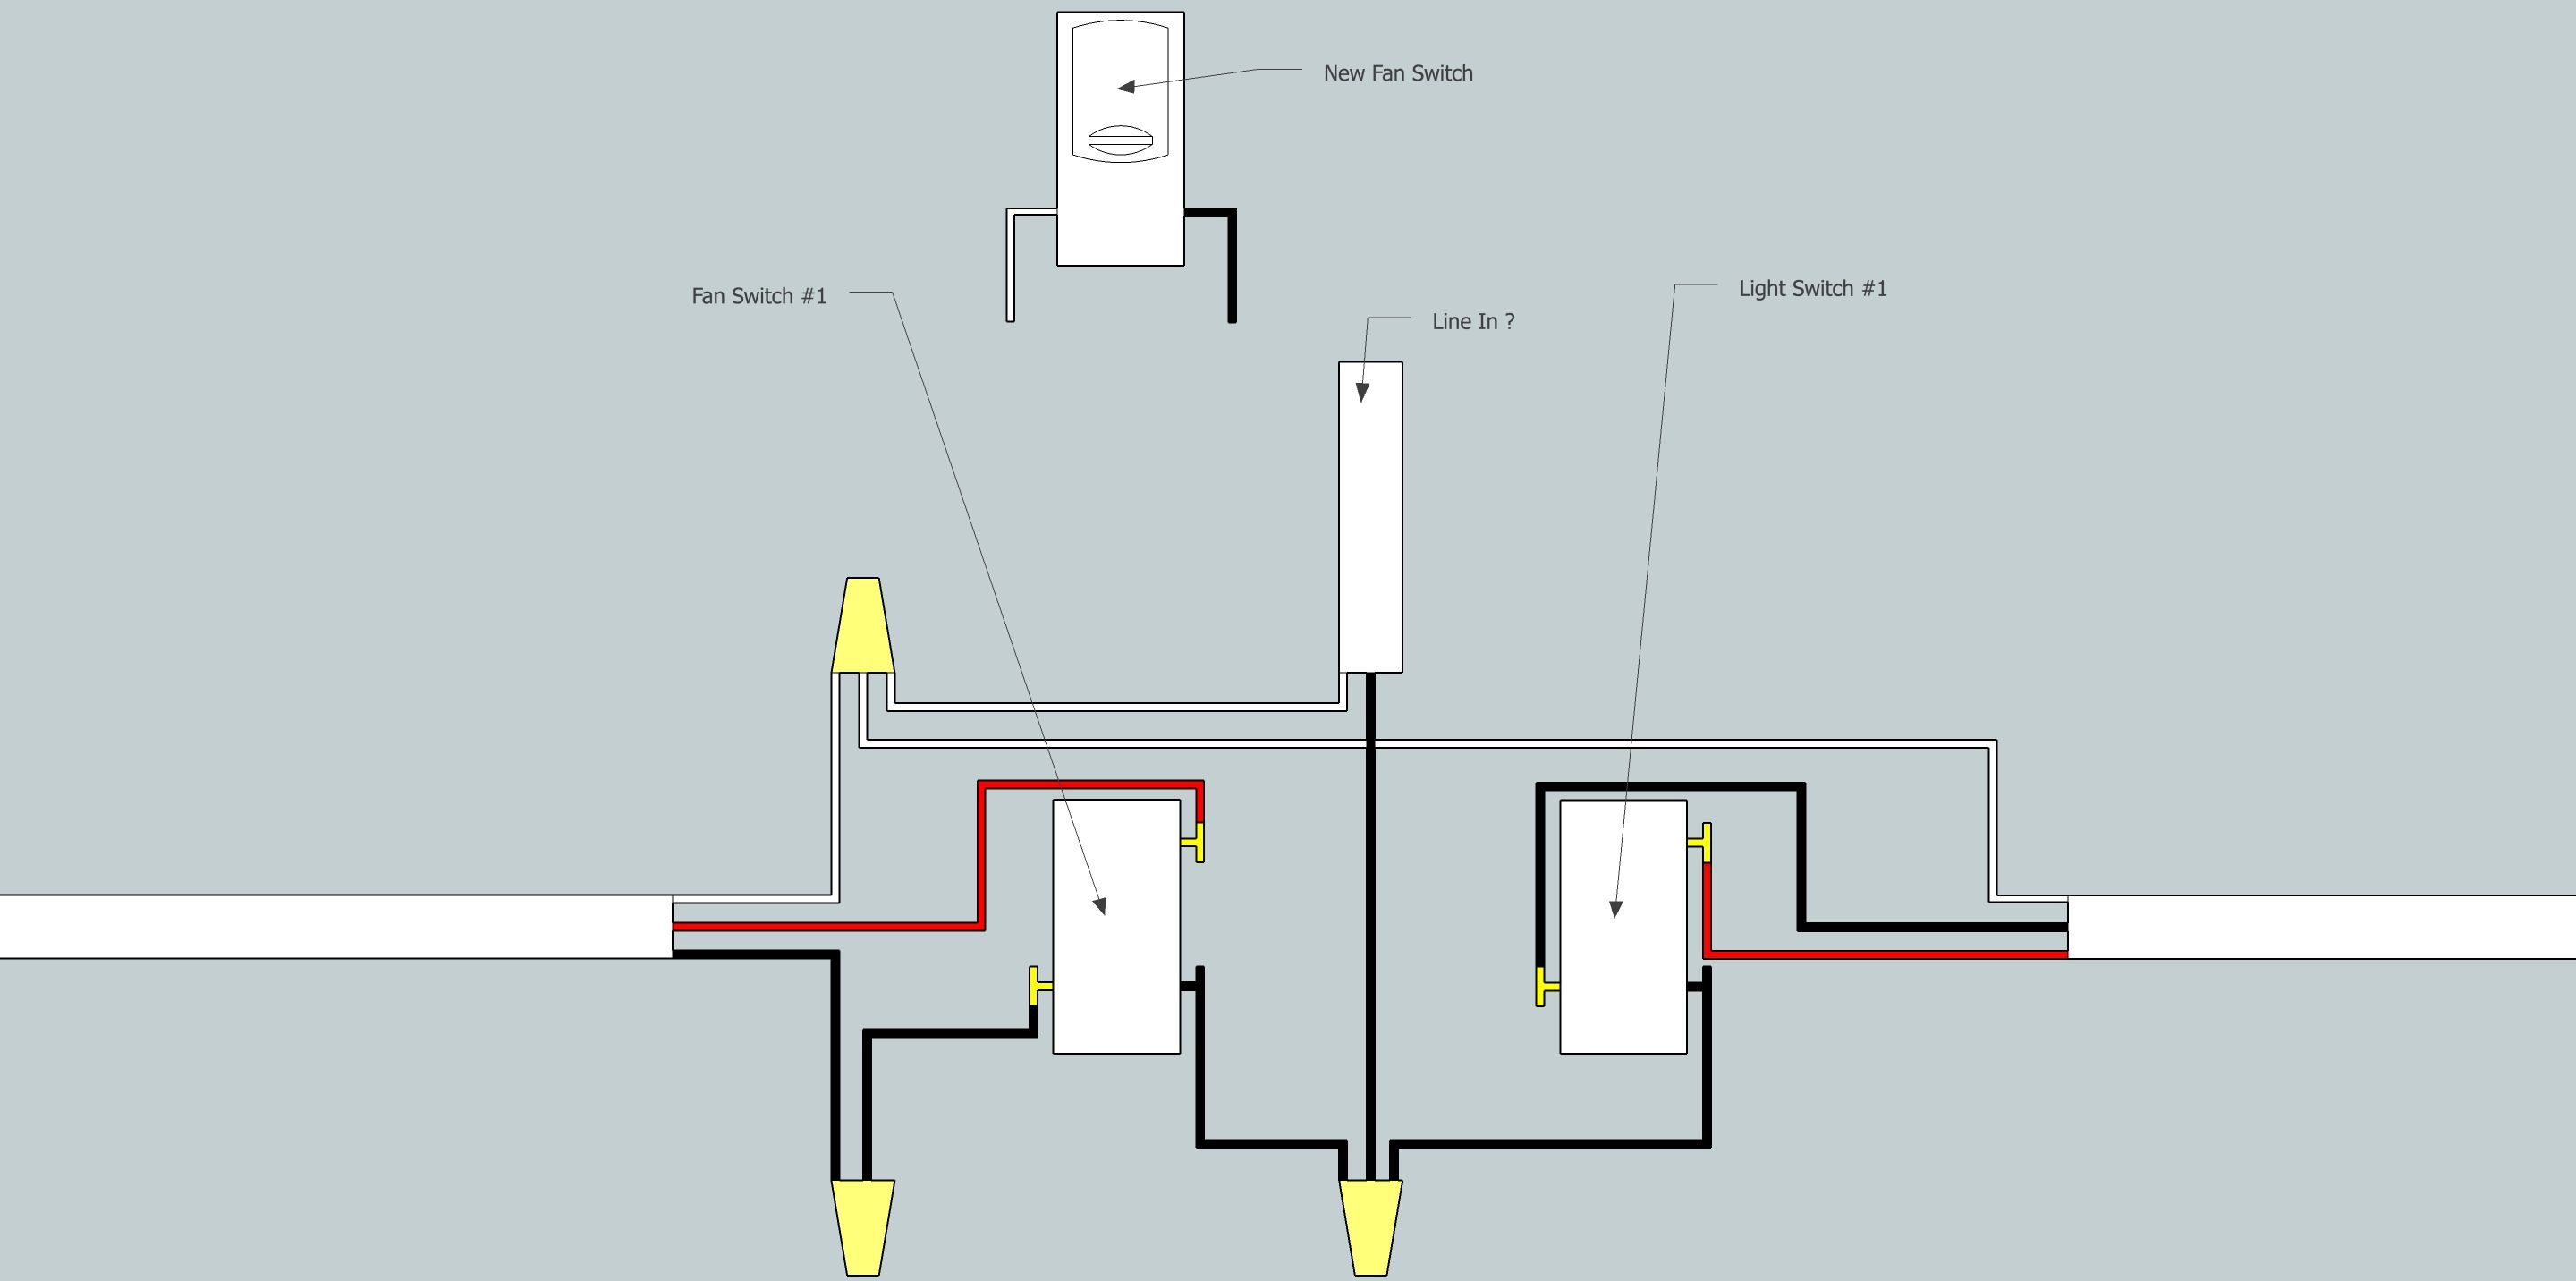 13 Good Wiring Diagram For 3 Way Switch Design House Wiring Ceiling Fan Switch Light Switch